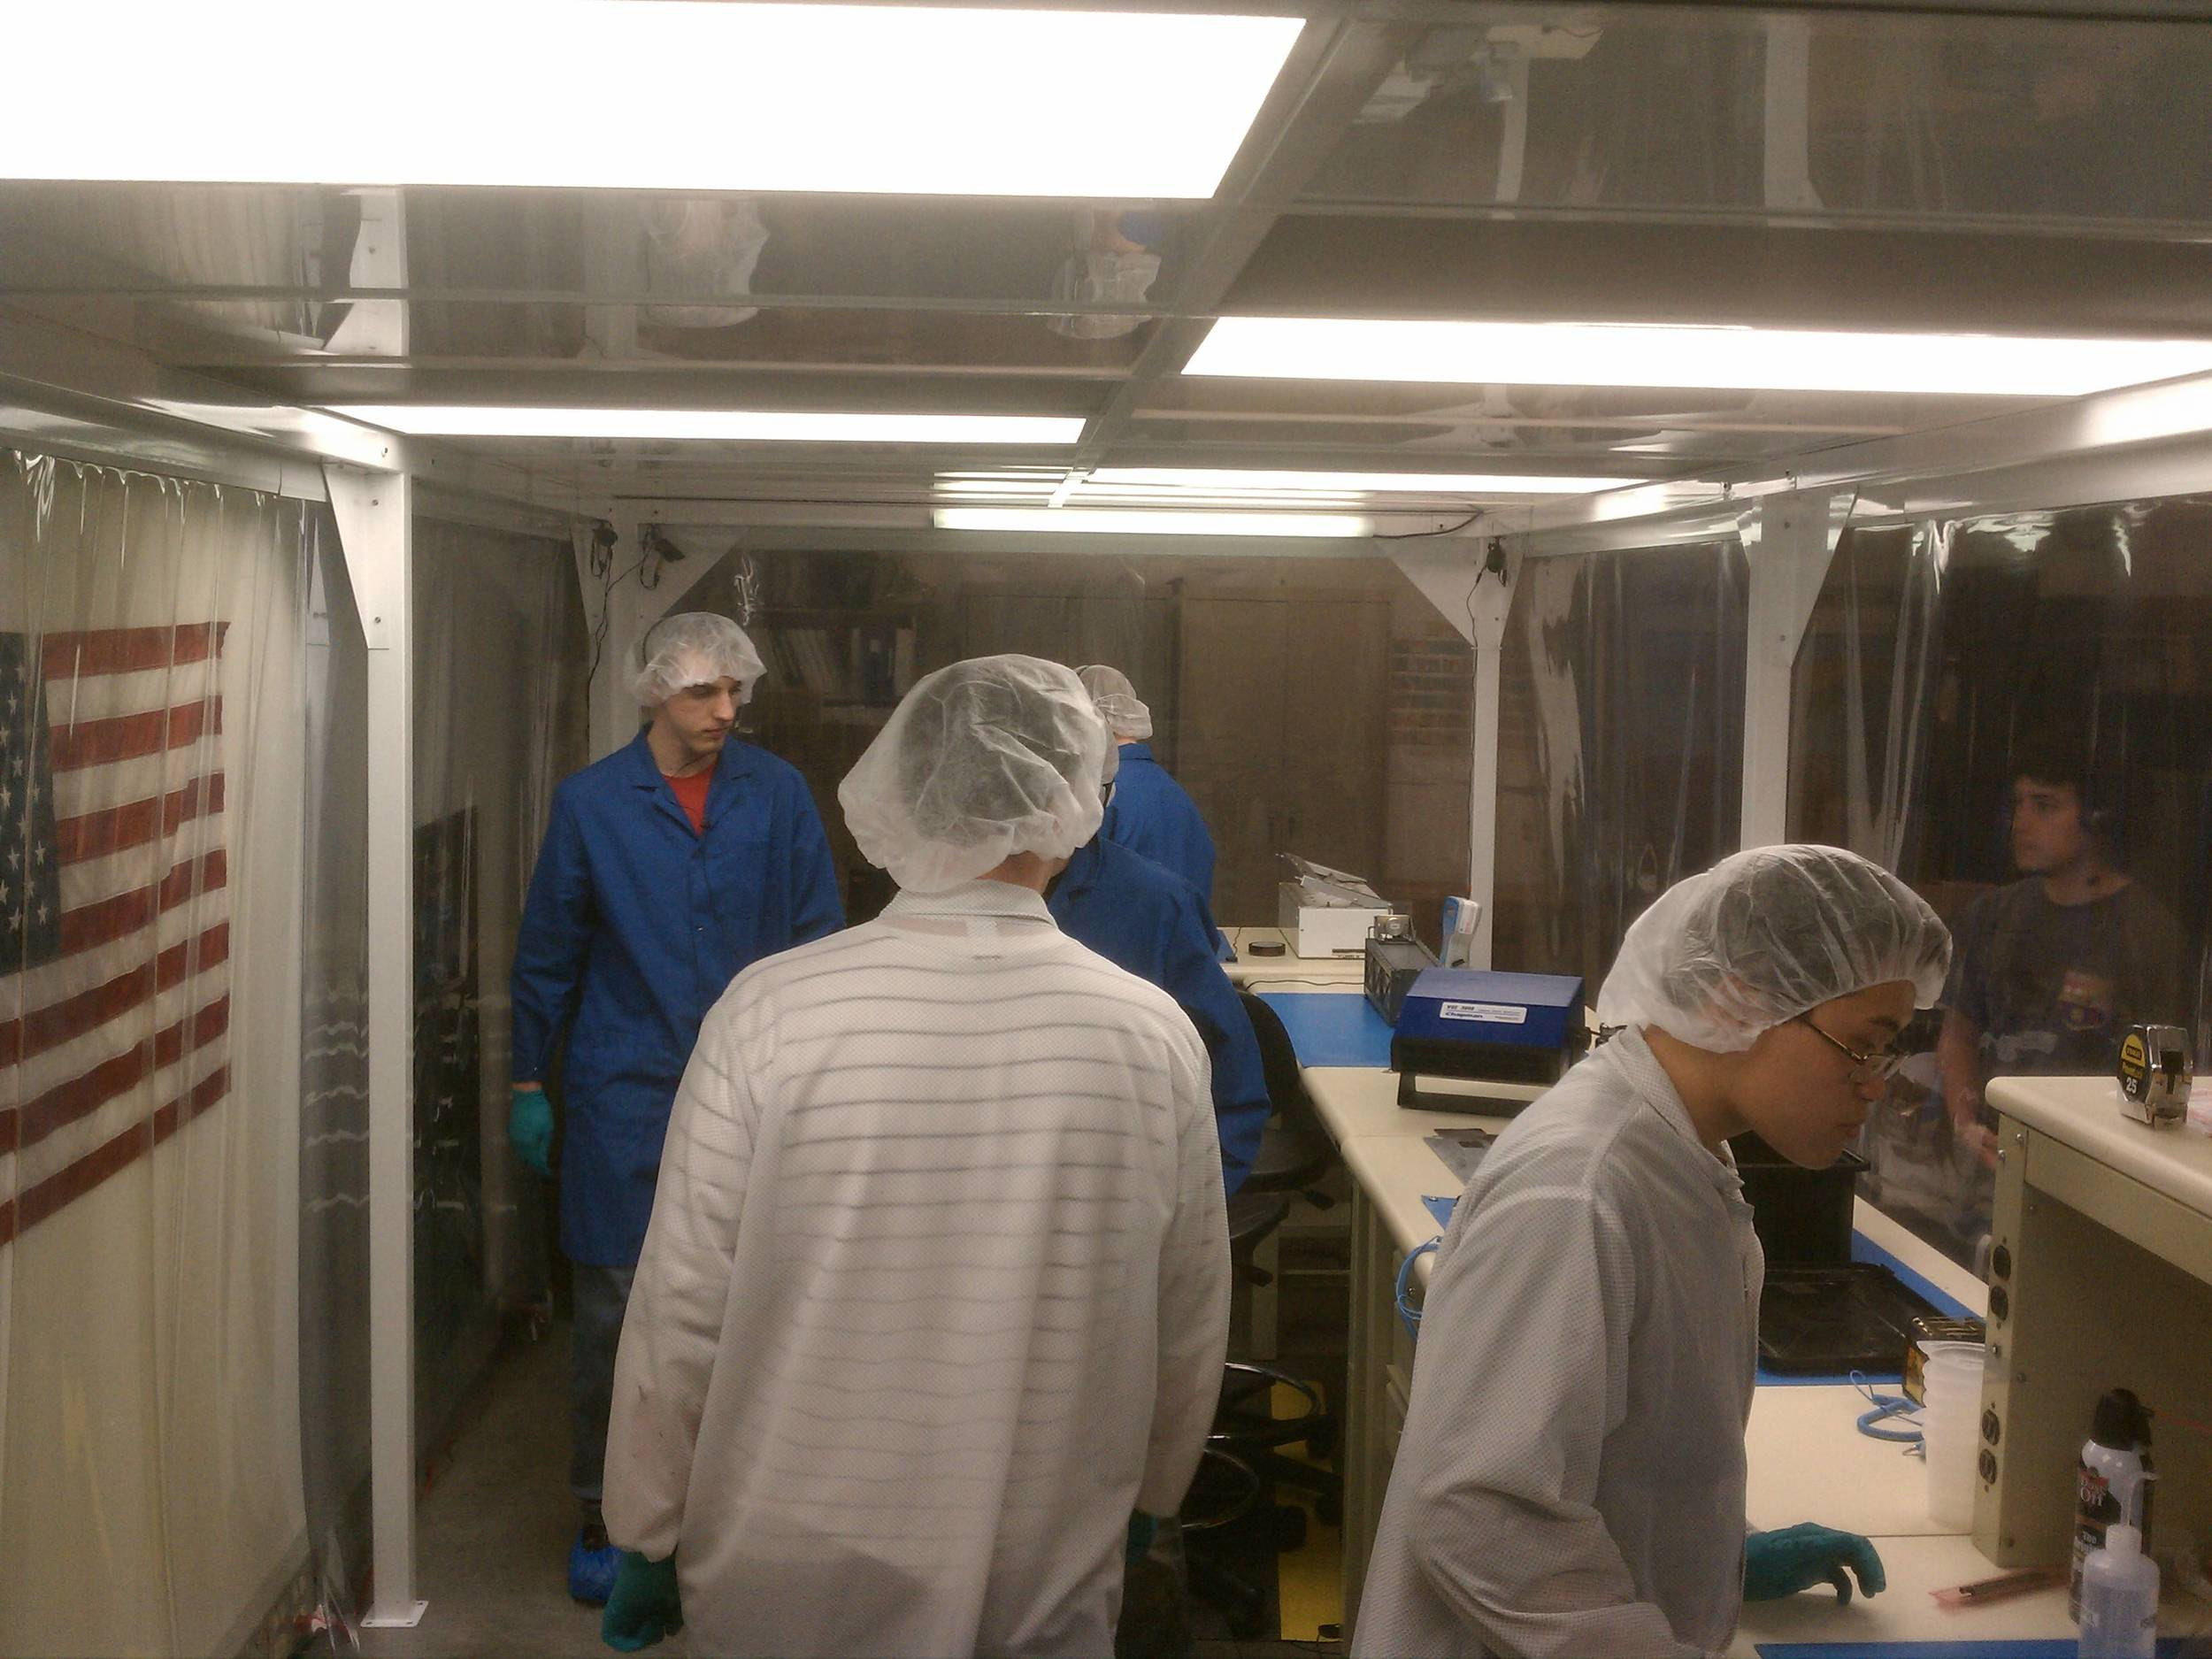 PolySat students busy in the clean room, learning how to install solar cells